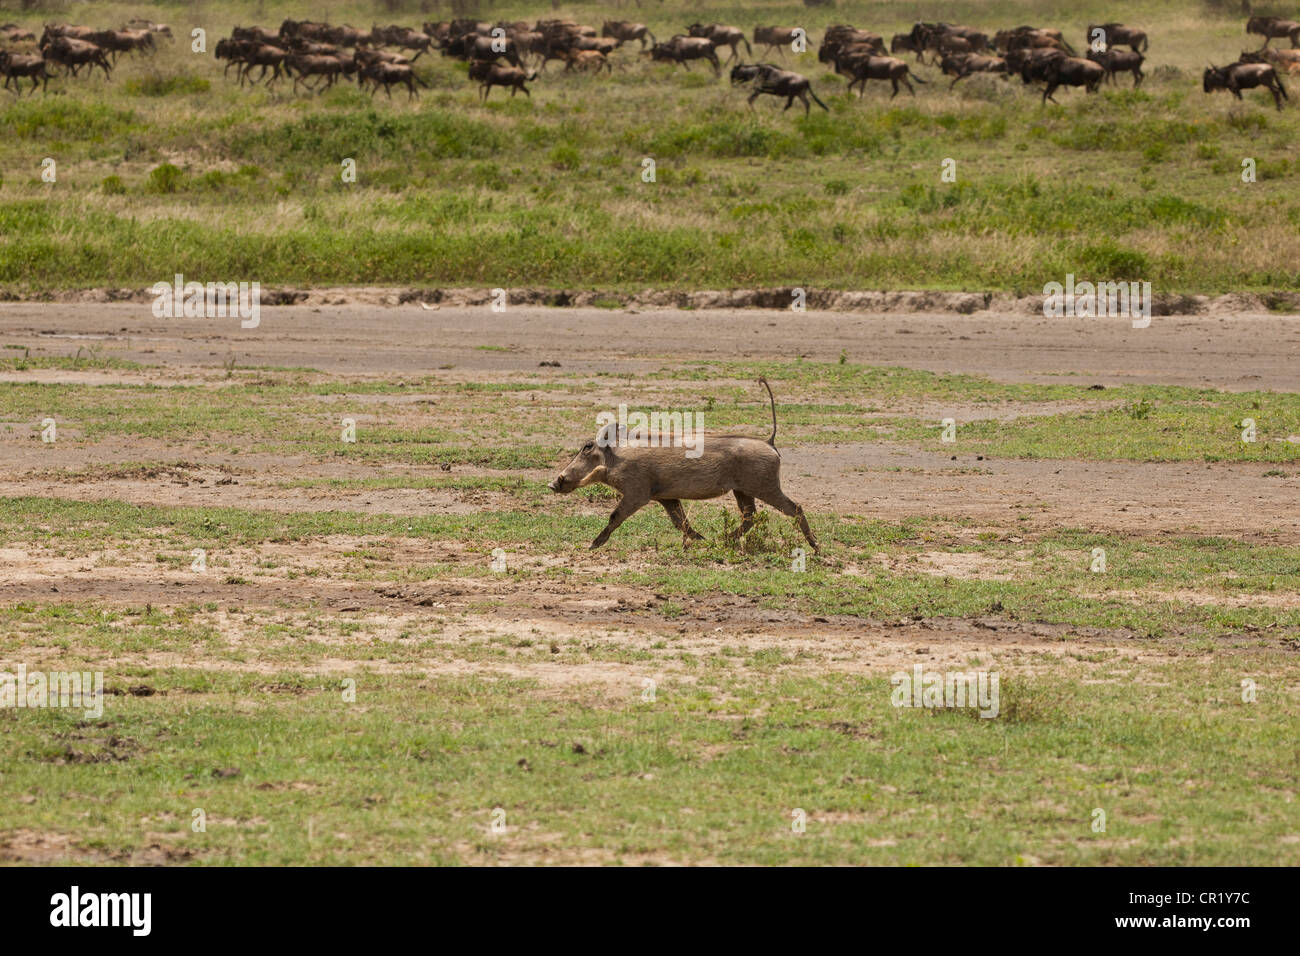 Warthog and Wildebeest Running in the Great Migration - Stock Image